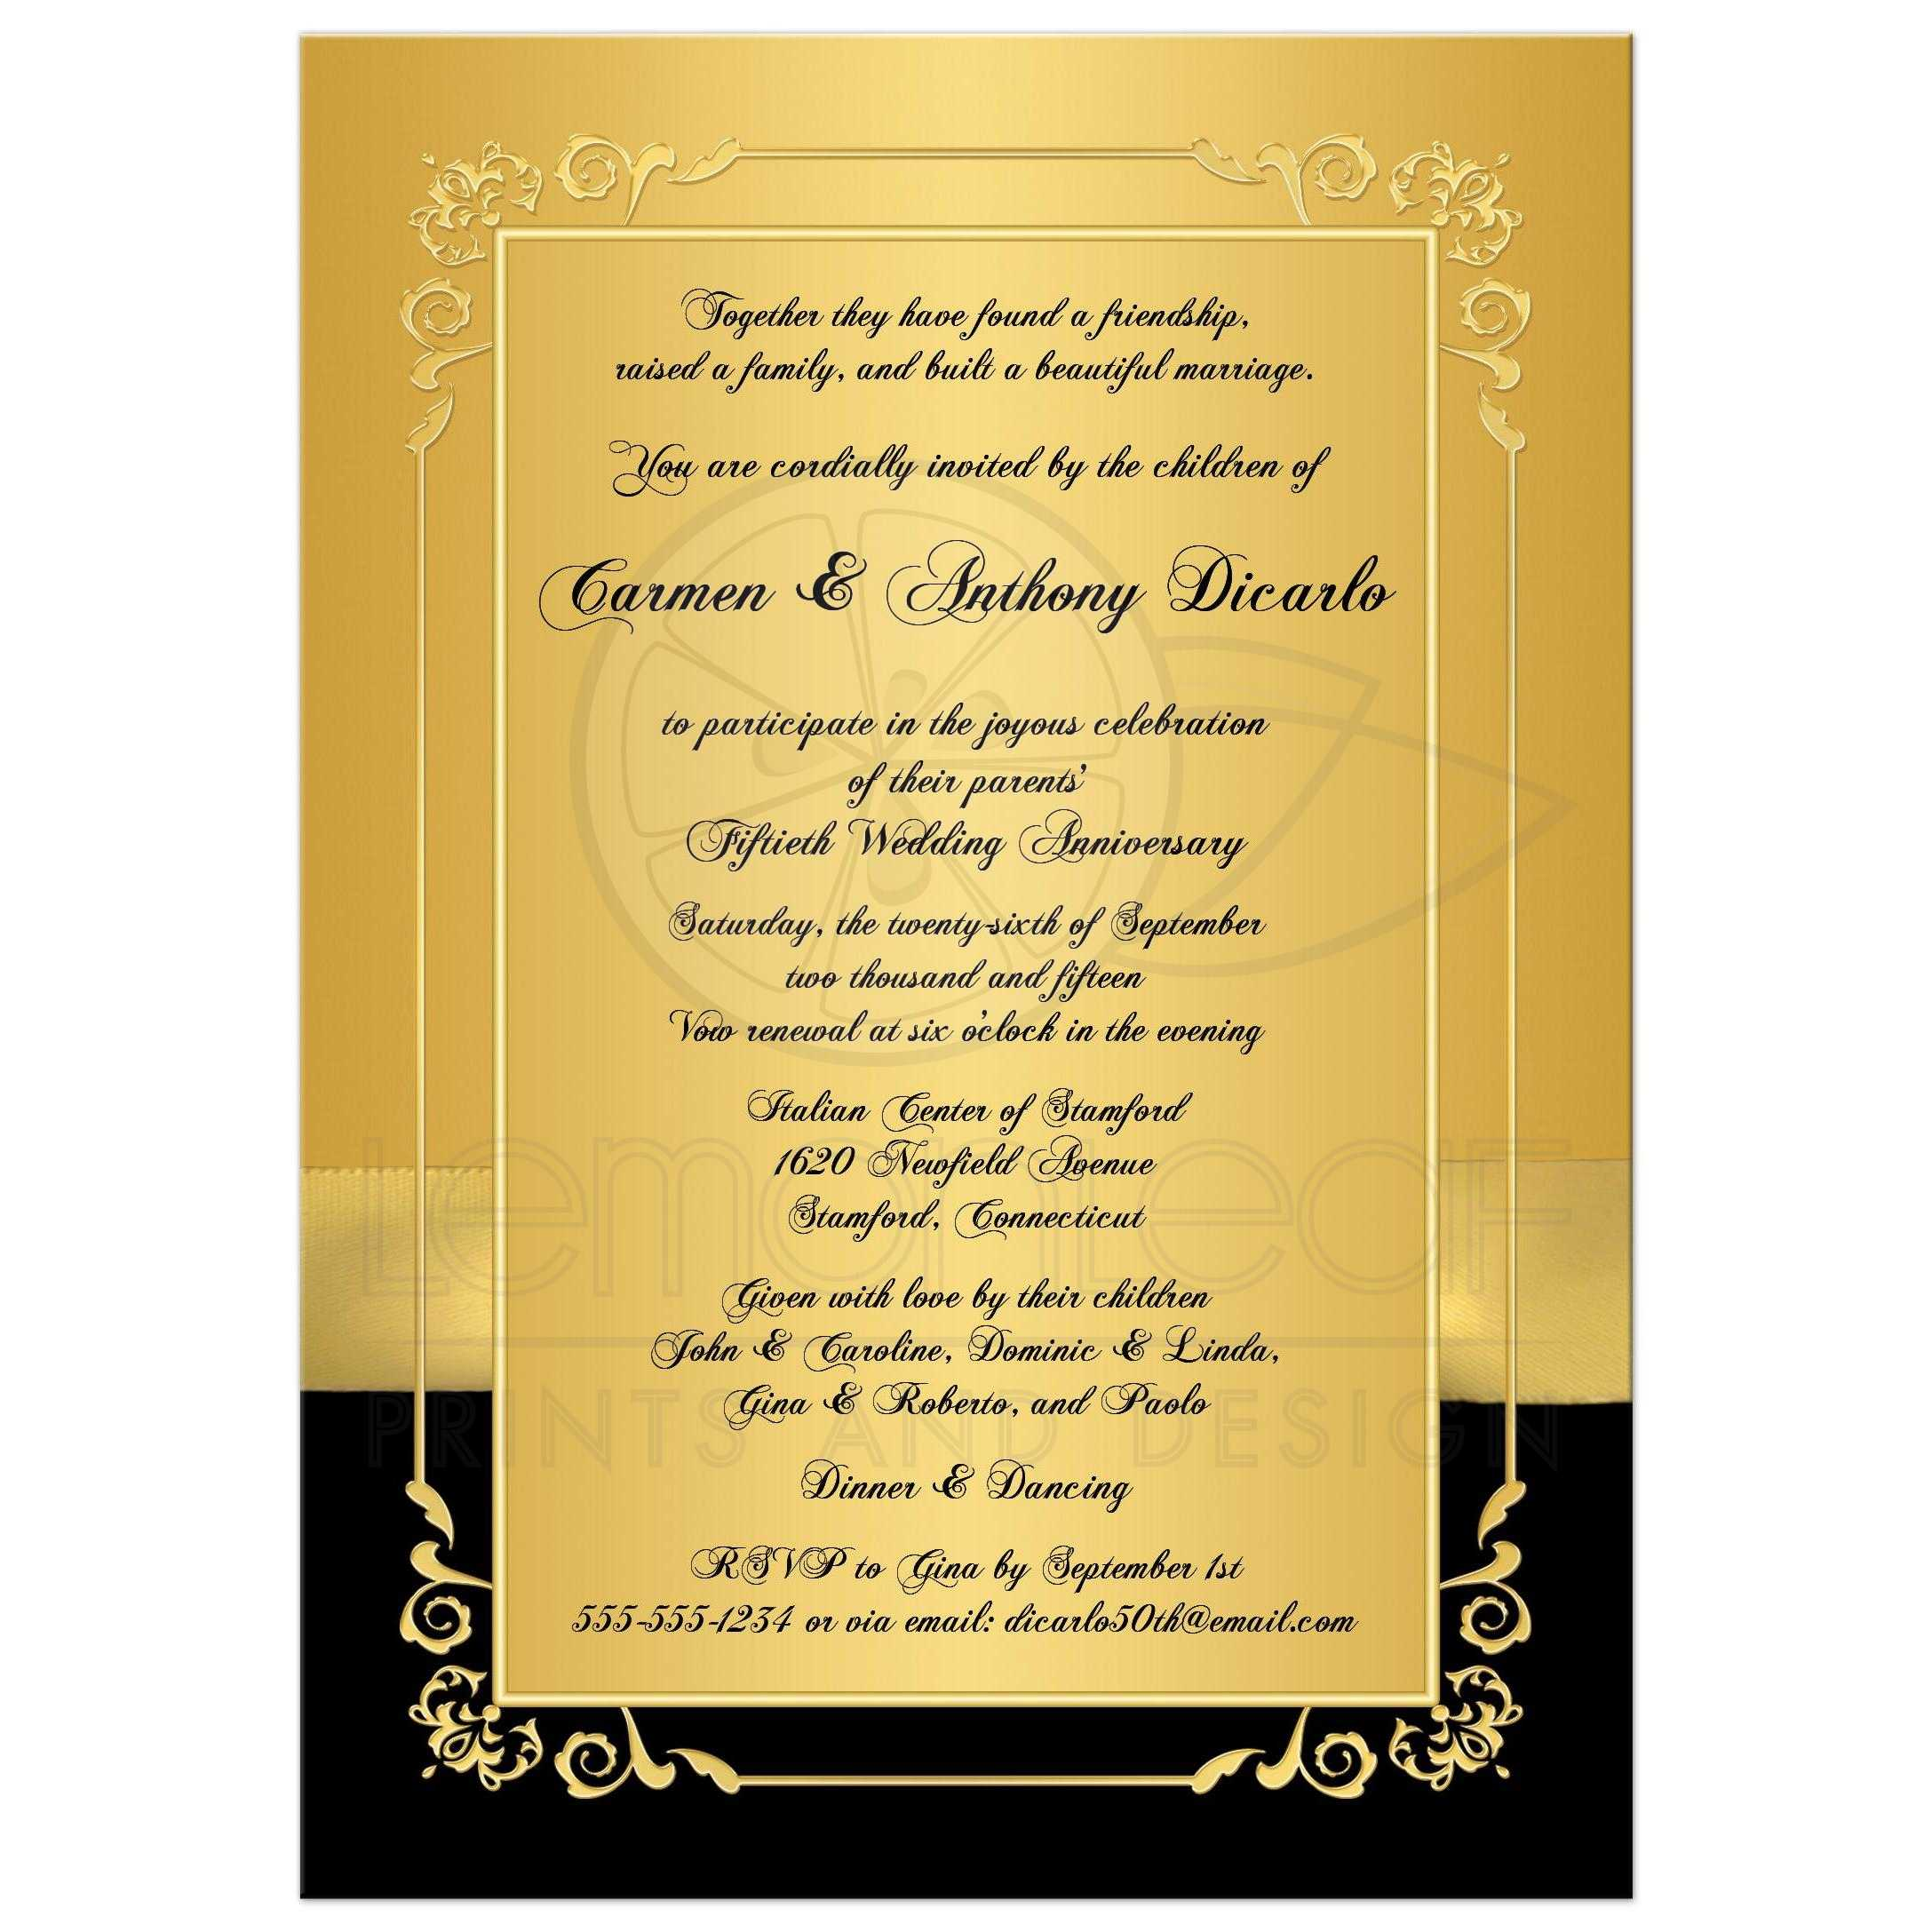 50th Wedding Anniversary Invitation | Black and Gold ...